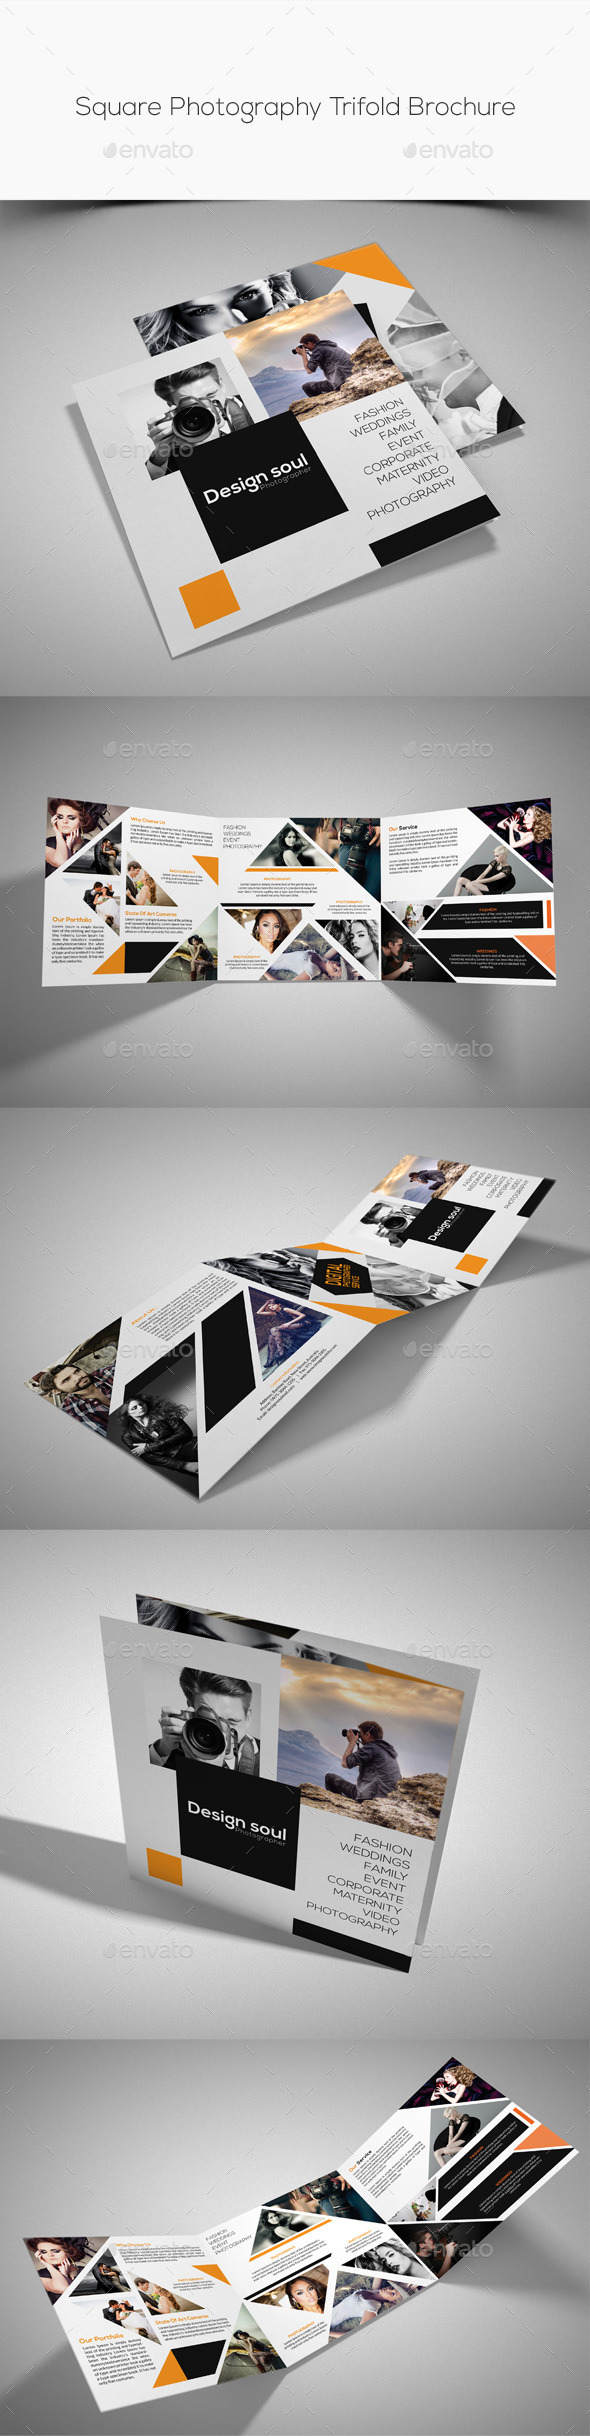 GraphicRiver Square Photography Trifold Brochure 10316769